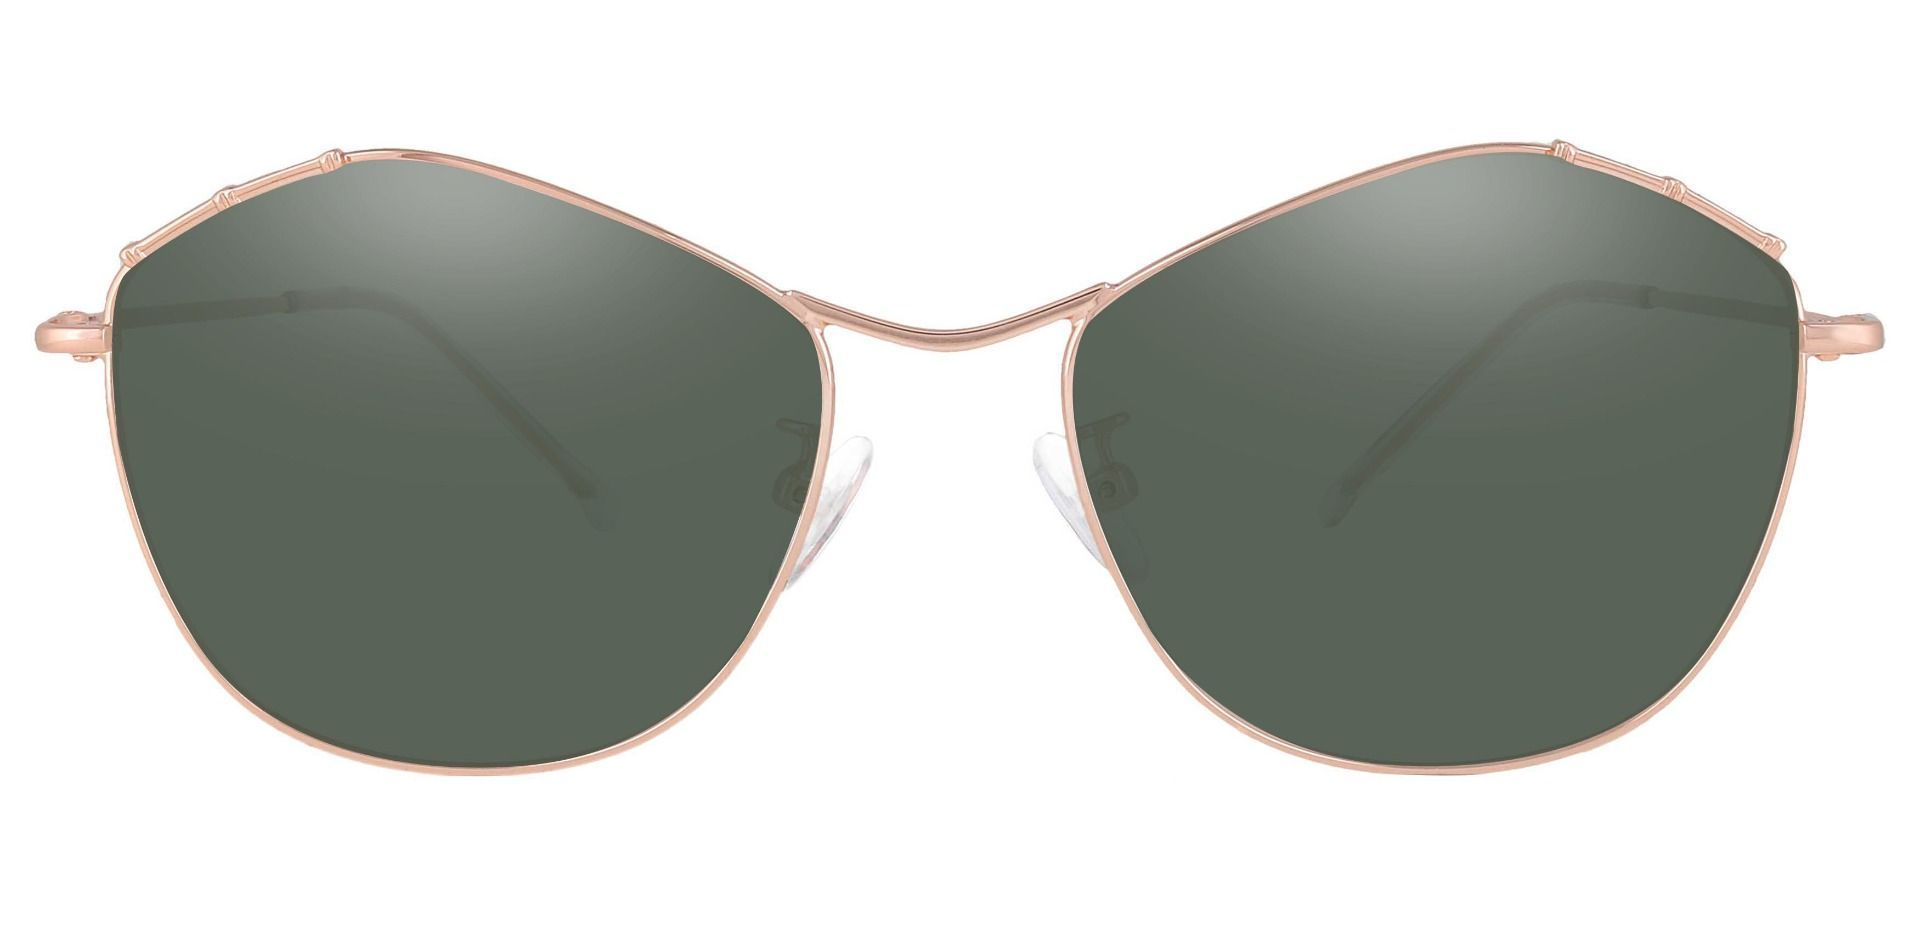 Bamboo Geometric Non-Rx Sunglasses - Rose Gold Frame With Green Lenses